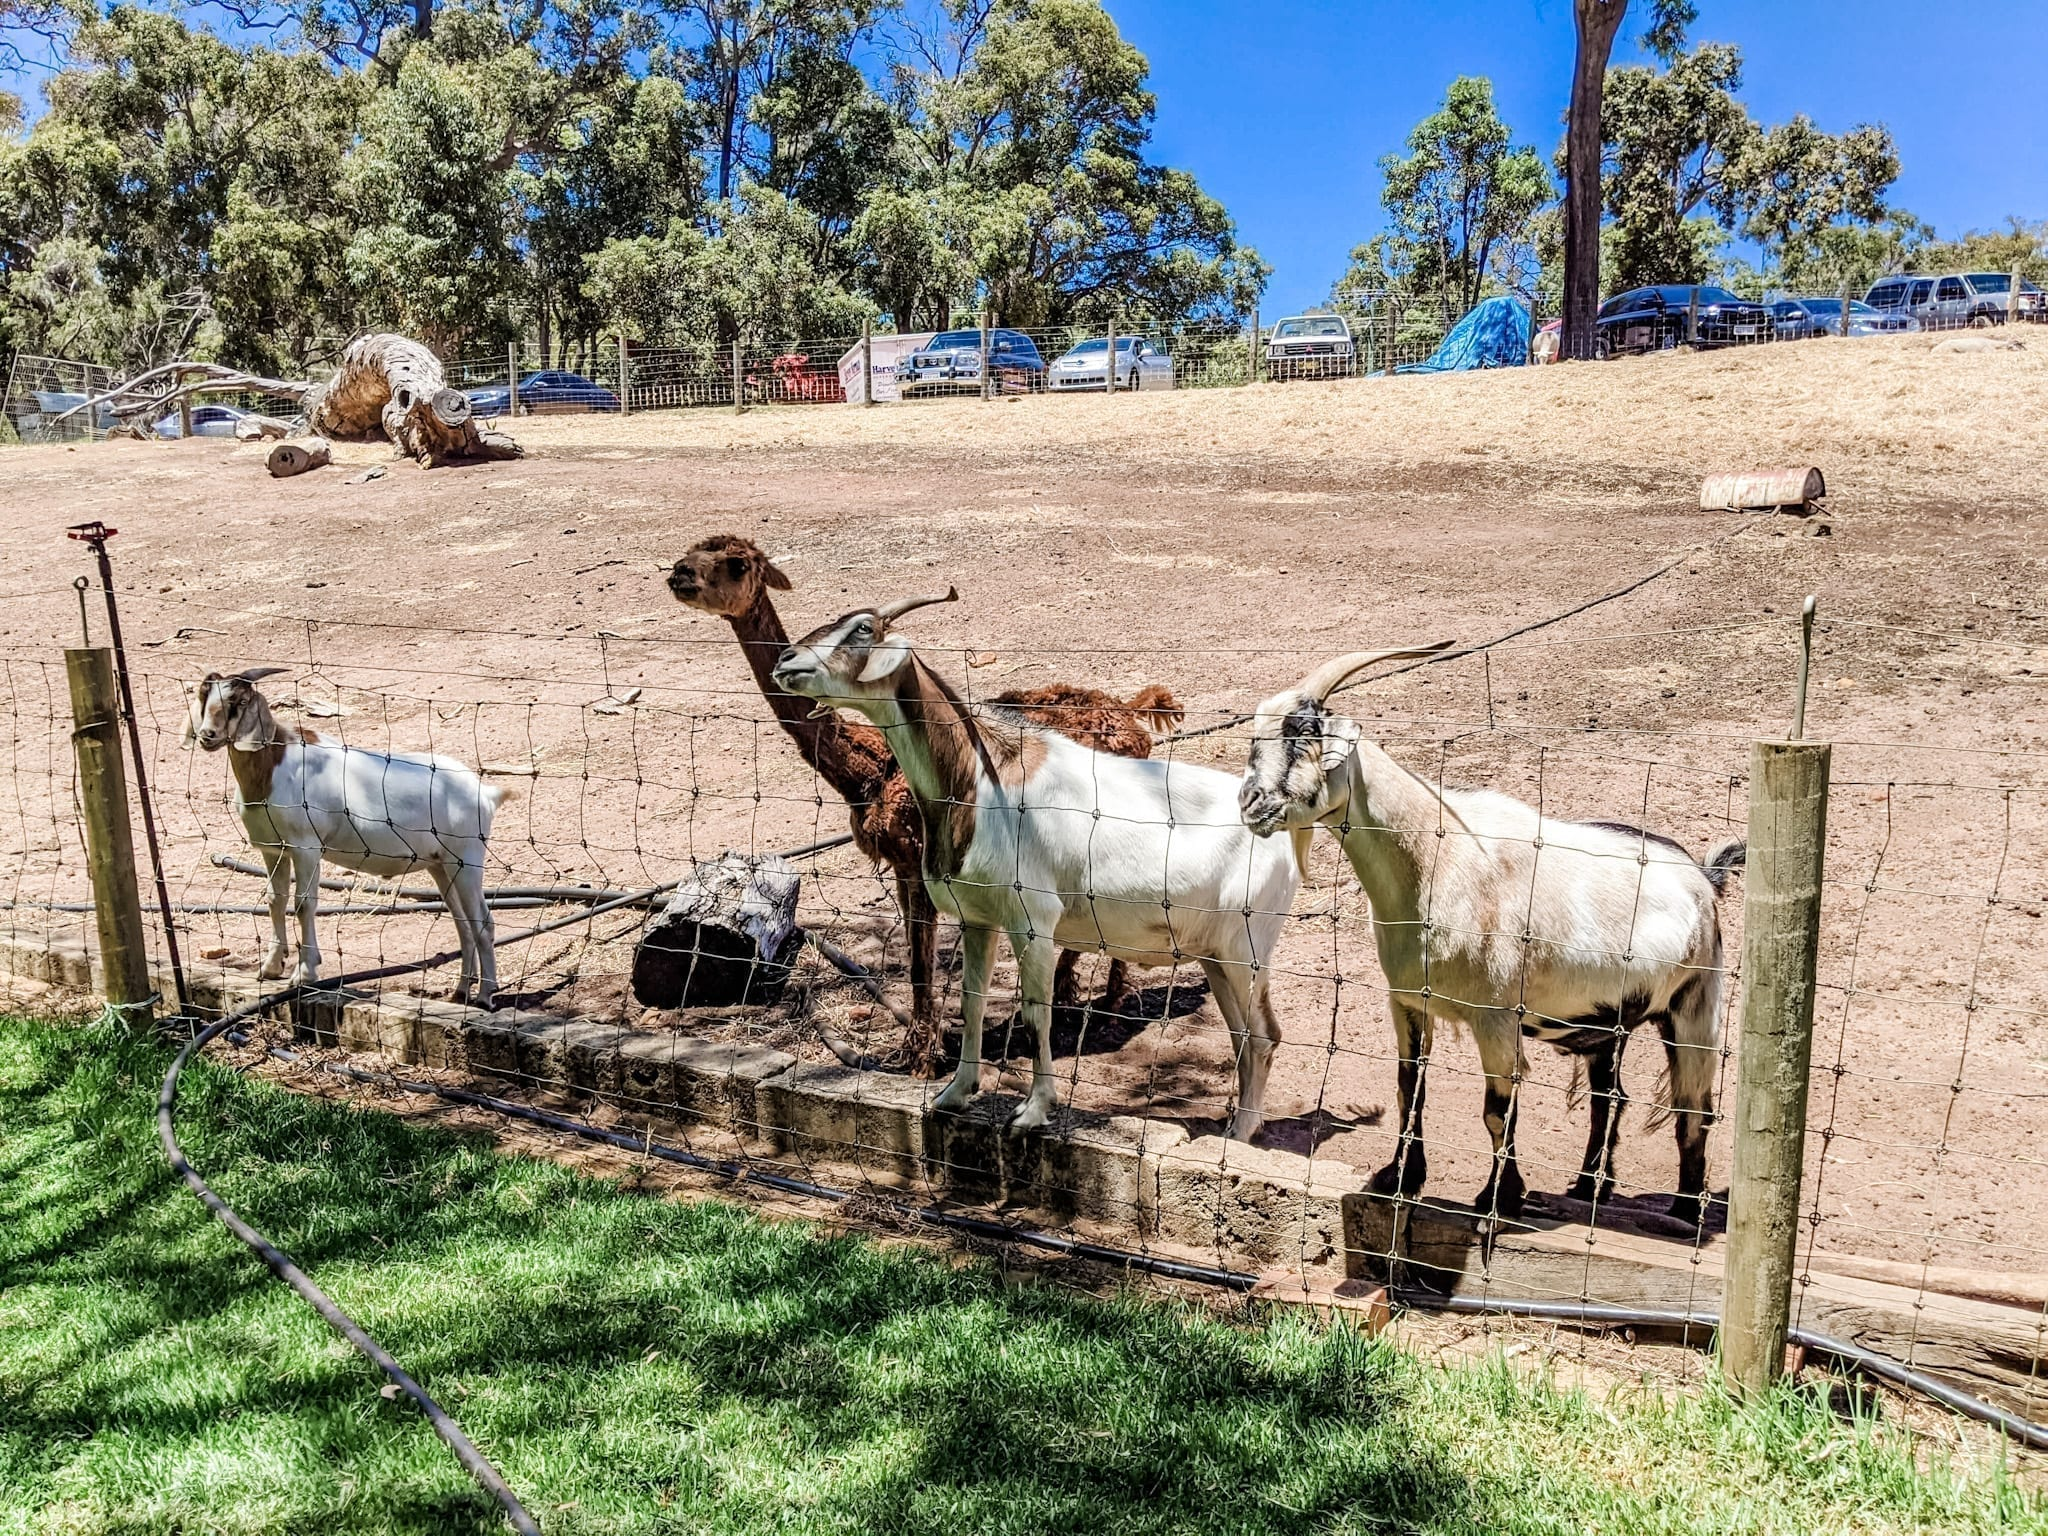 Countrylife Farm, Dunsborough